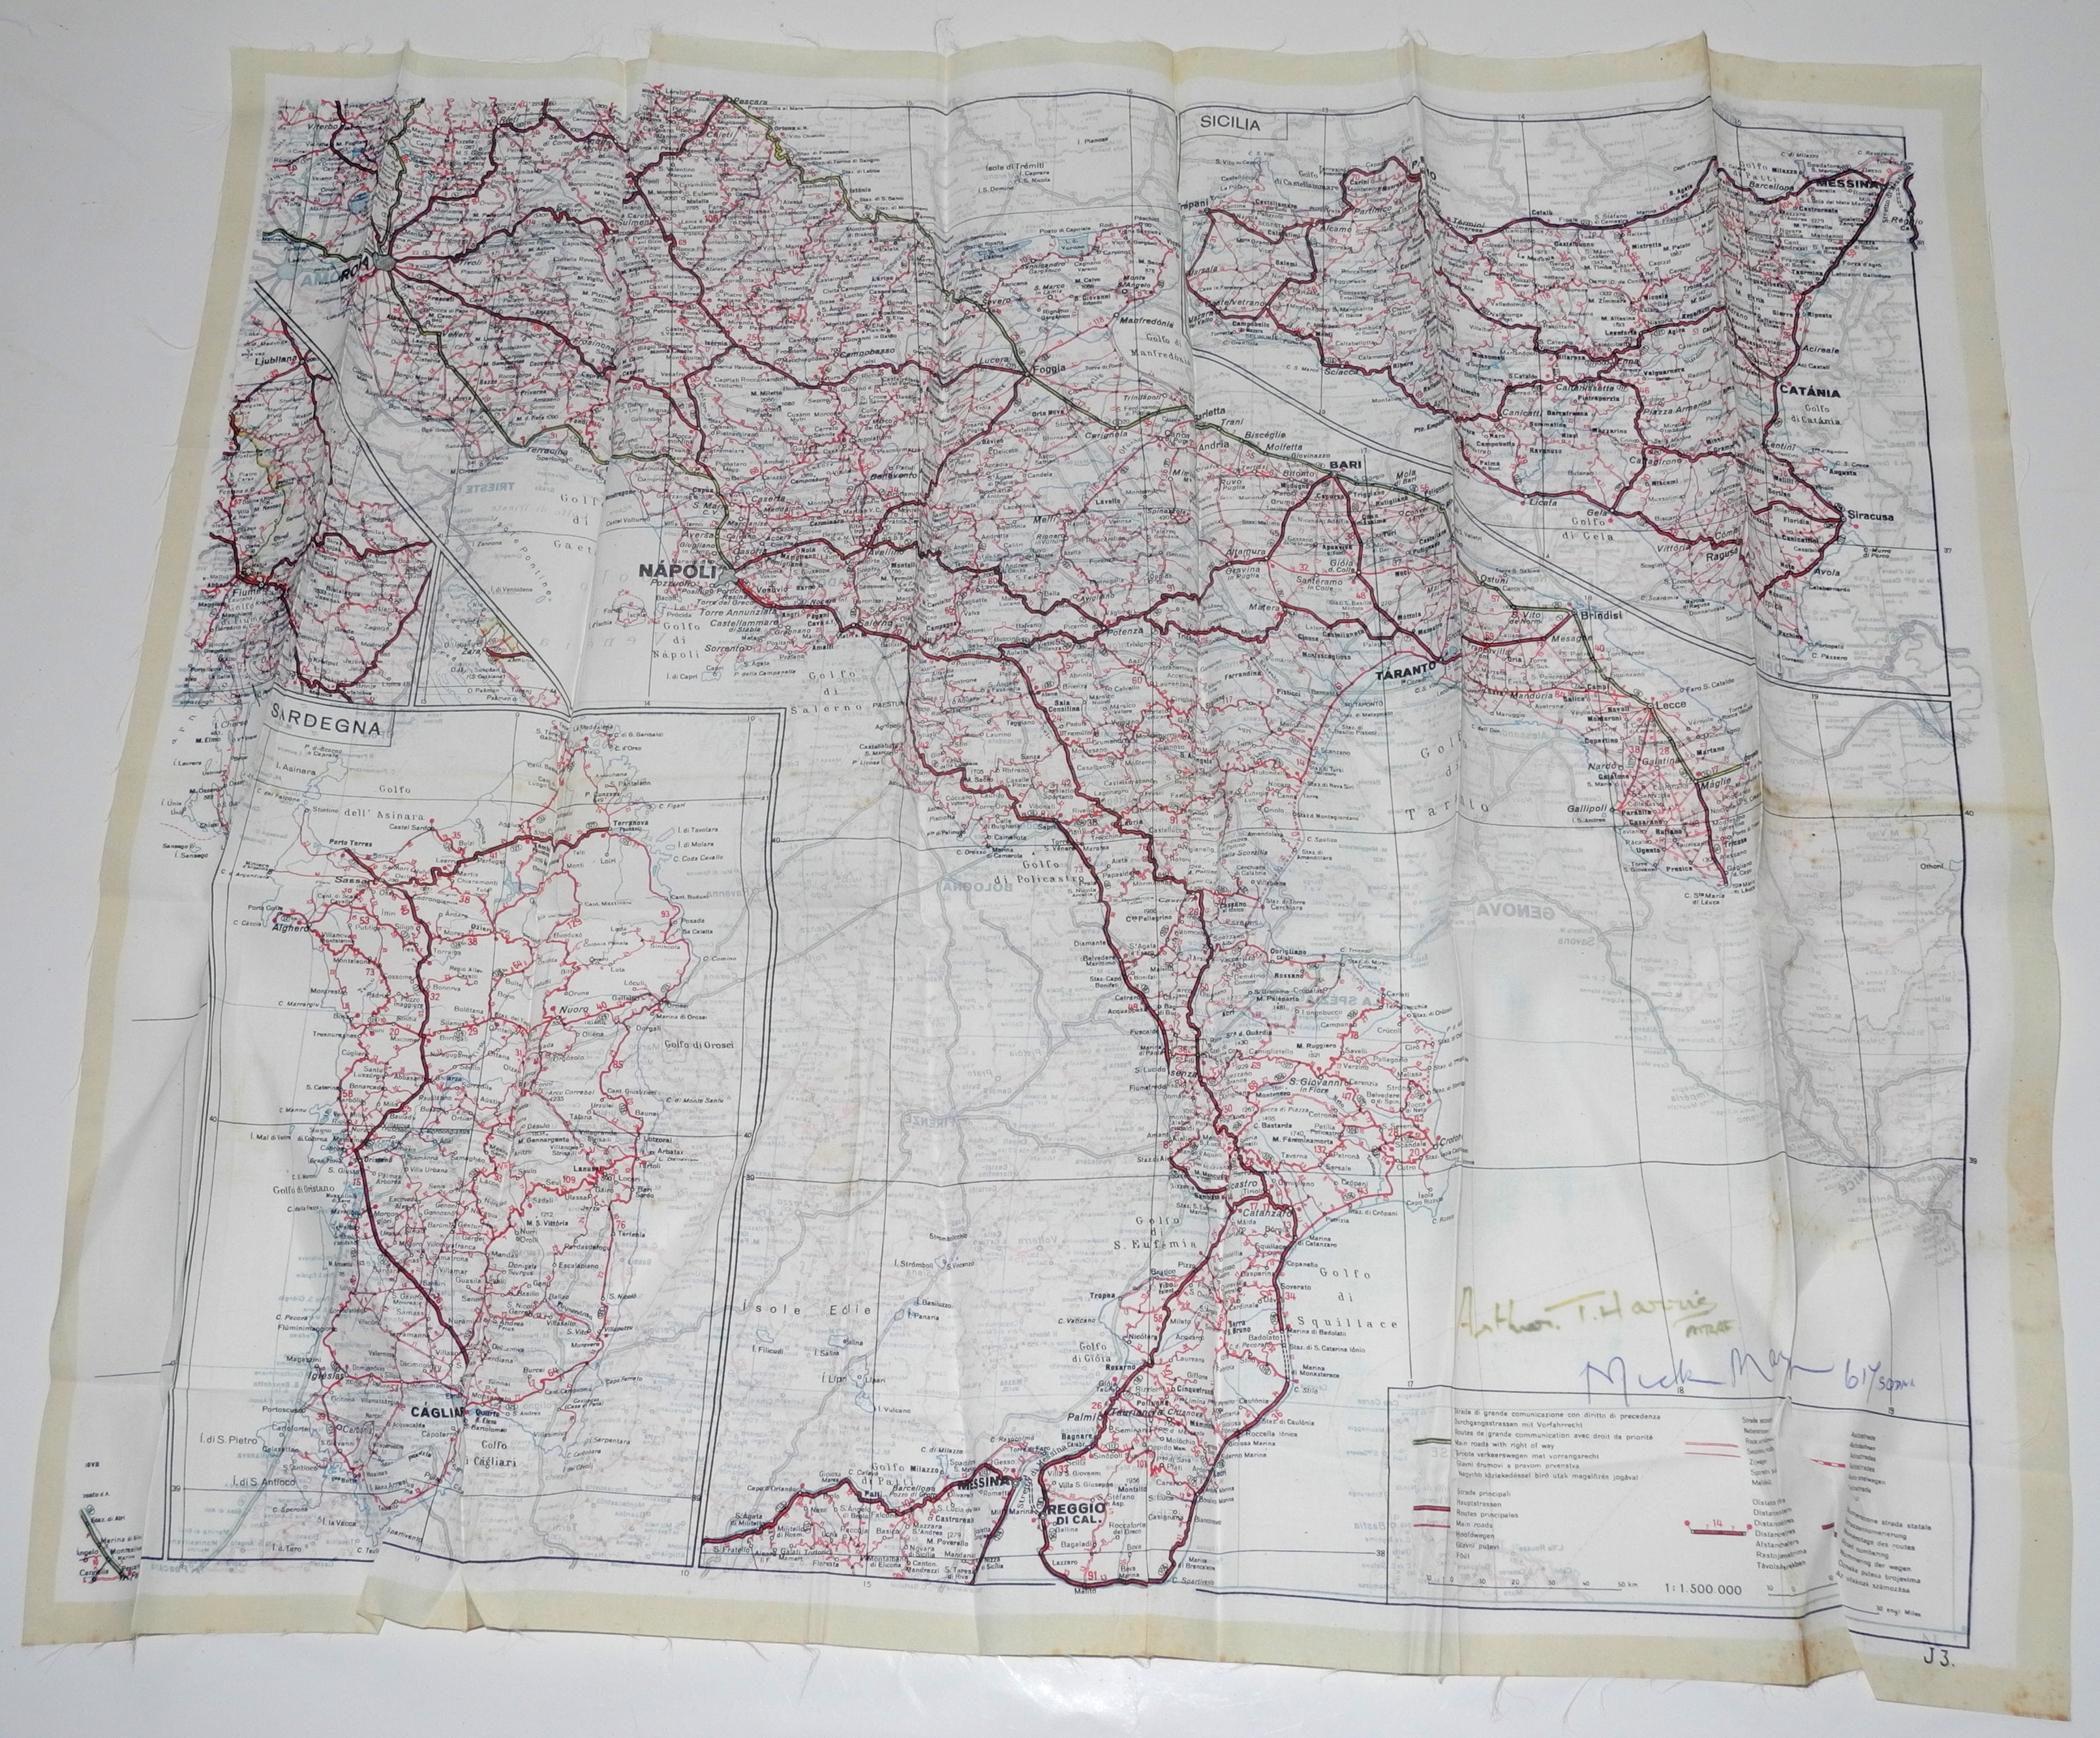 RAF Dambusters signed items3014